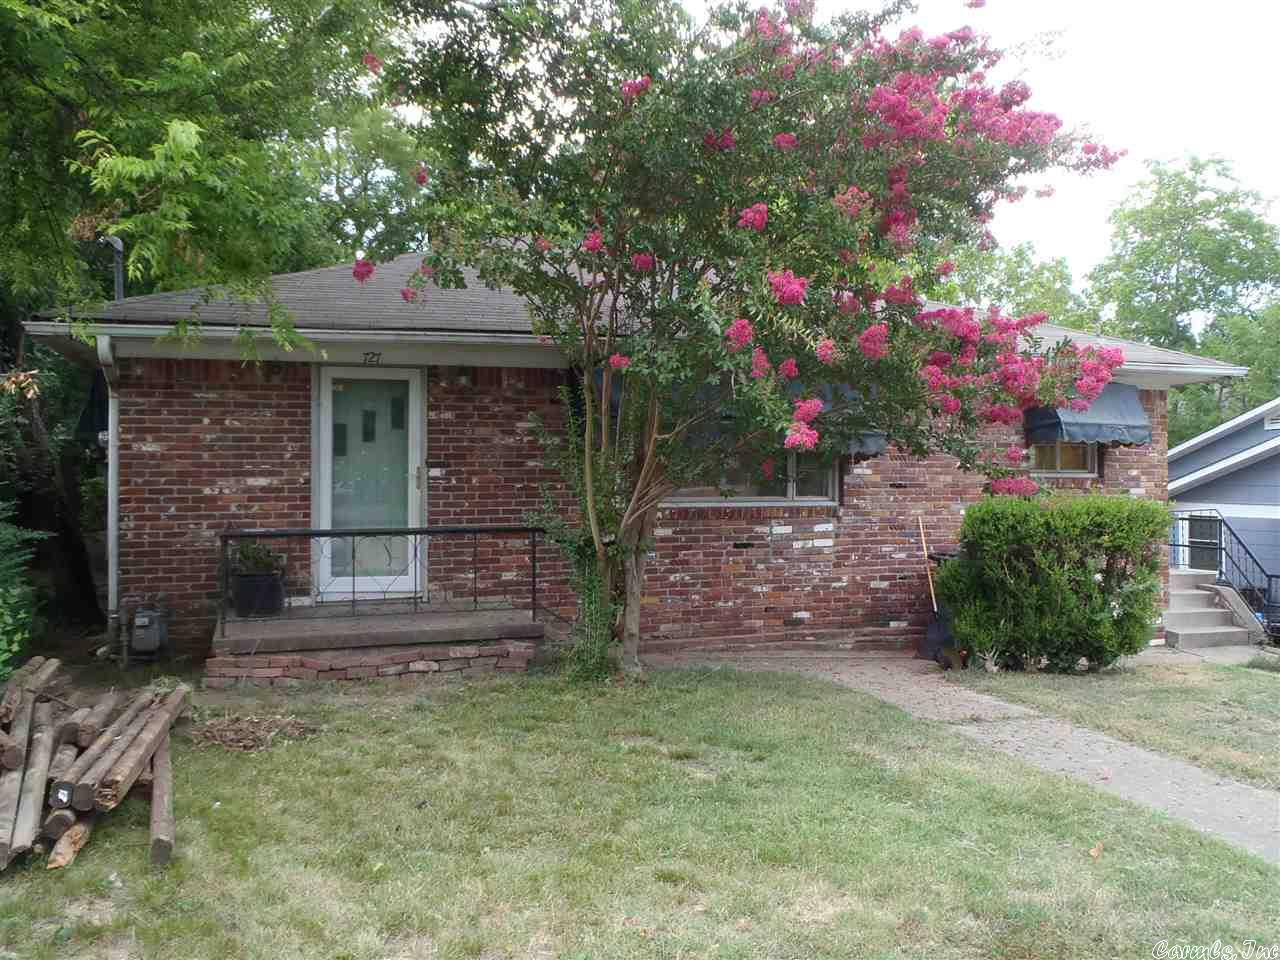 Home For Sale At 727 Linwood In Hot Springs Ar For 47500